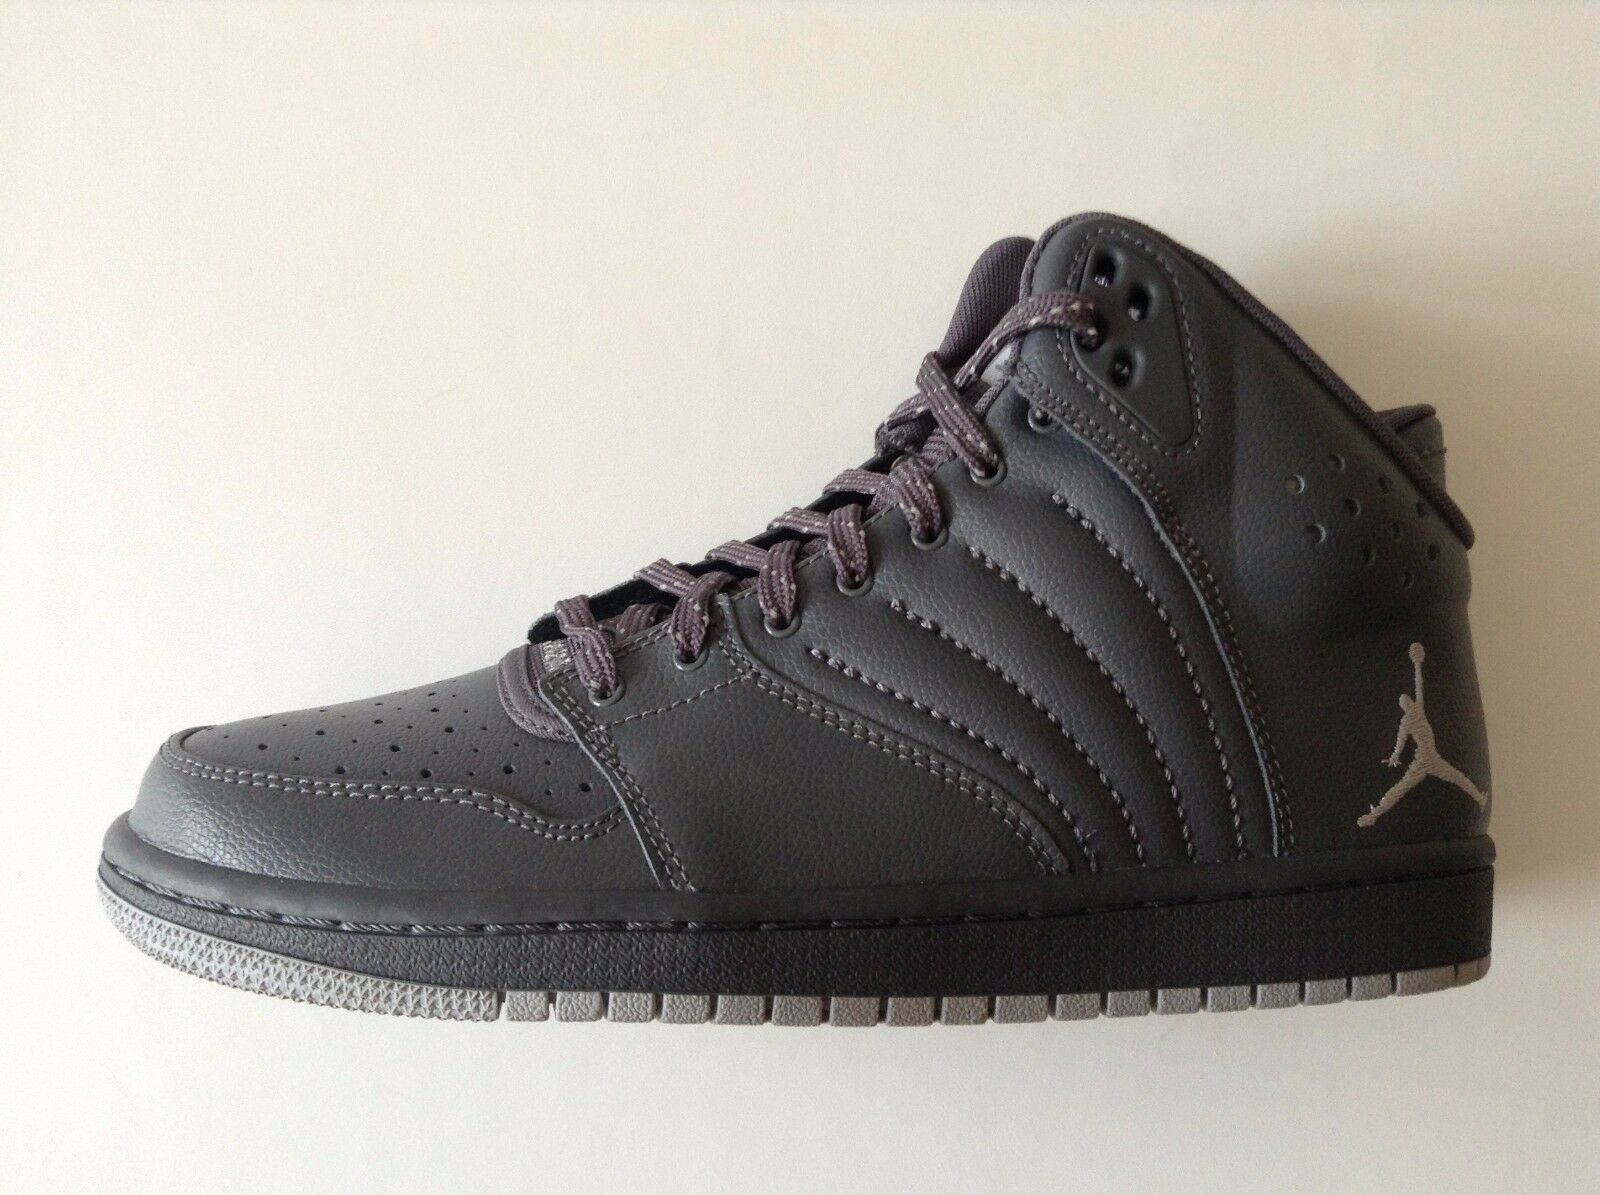 Genuine Nike Jordan 1 Flight 4 Hi Top Basketball Trainers - Gris -UK 7-7.5 - NEW